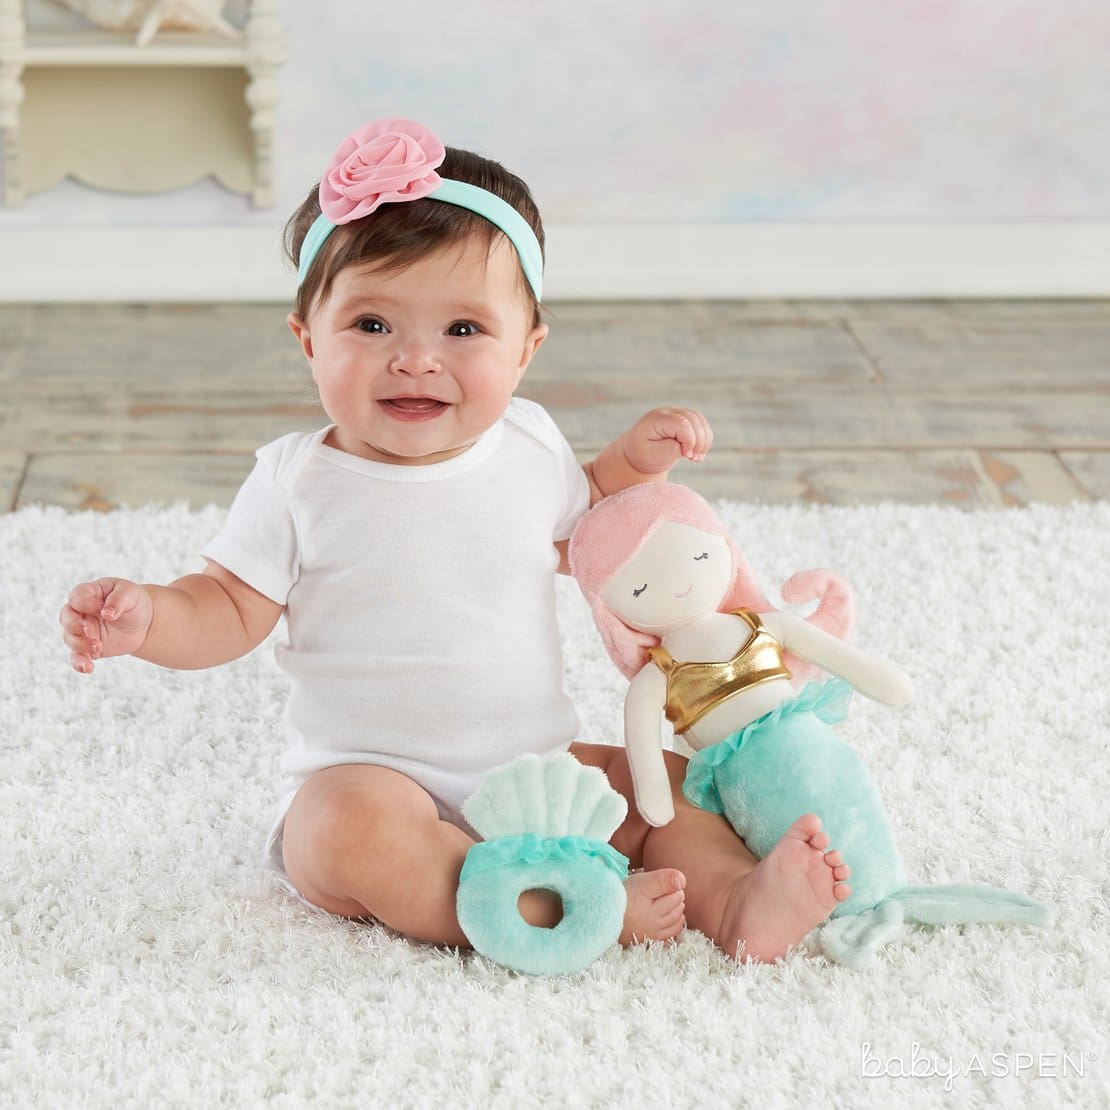 Mia the Mermaid Plush Plus Headband and Rattle for Baby